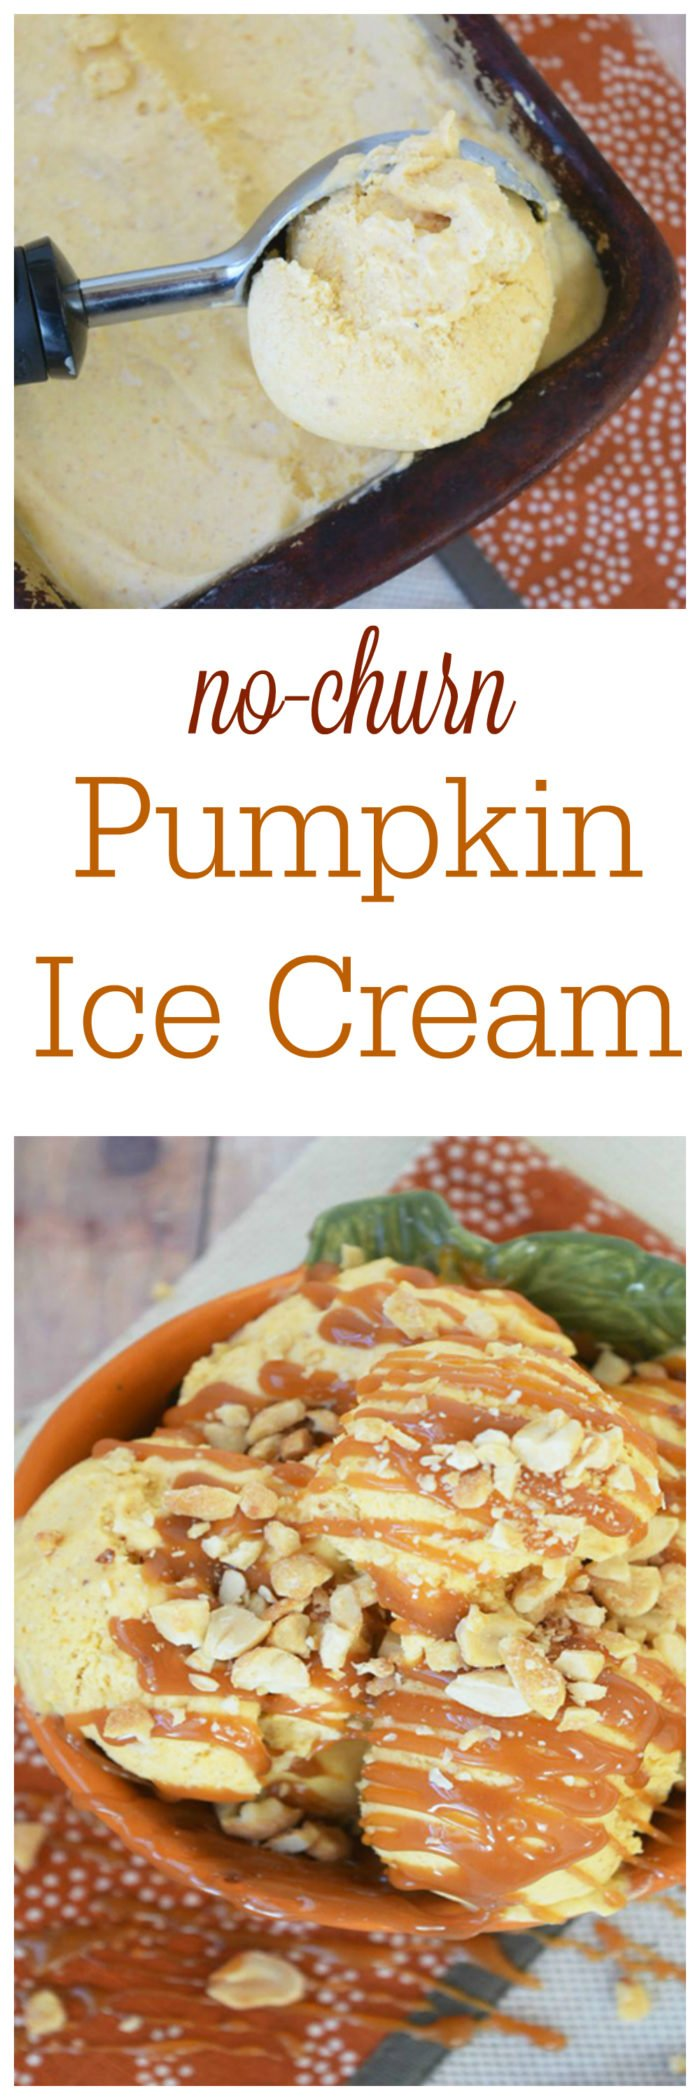 Pumpkin Pie Ice Cream Recipe is a no-churn recipe that tastes just like one you find at the local ice cream shop! by www.cookingwithruthie.com